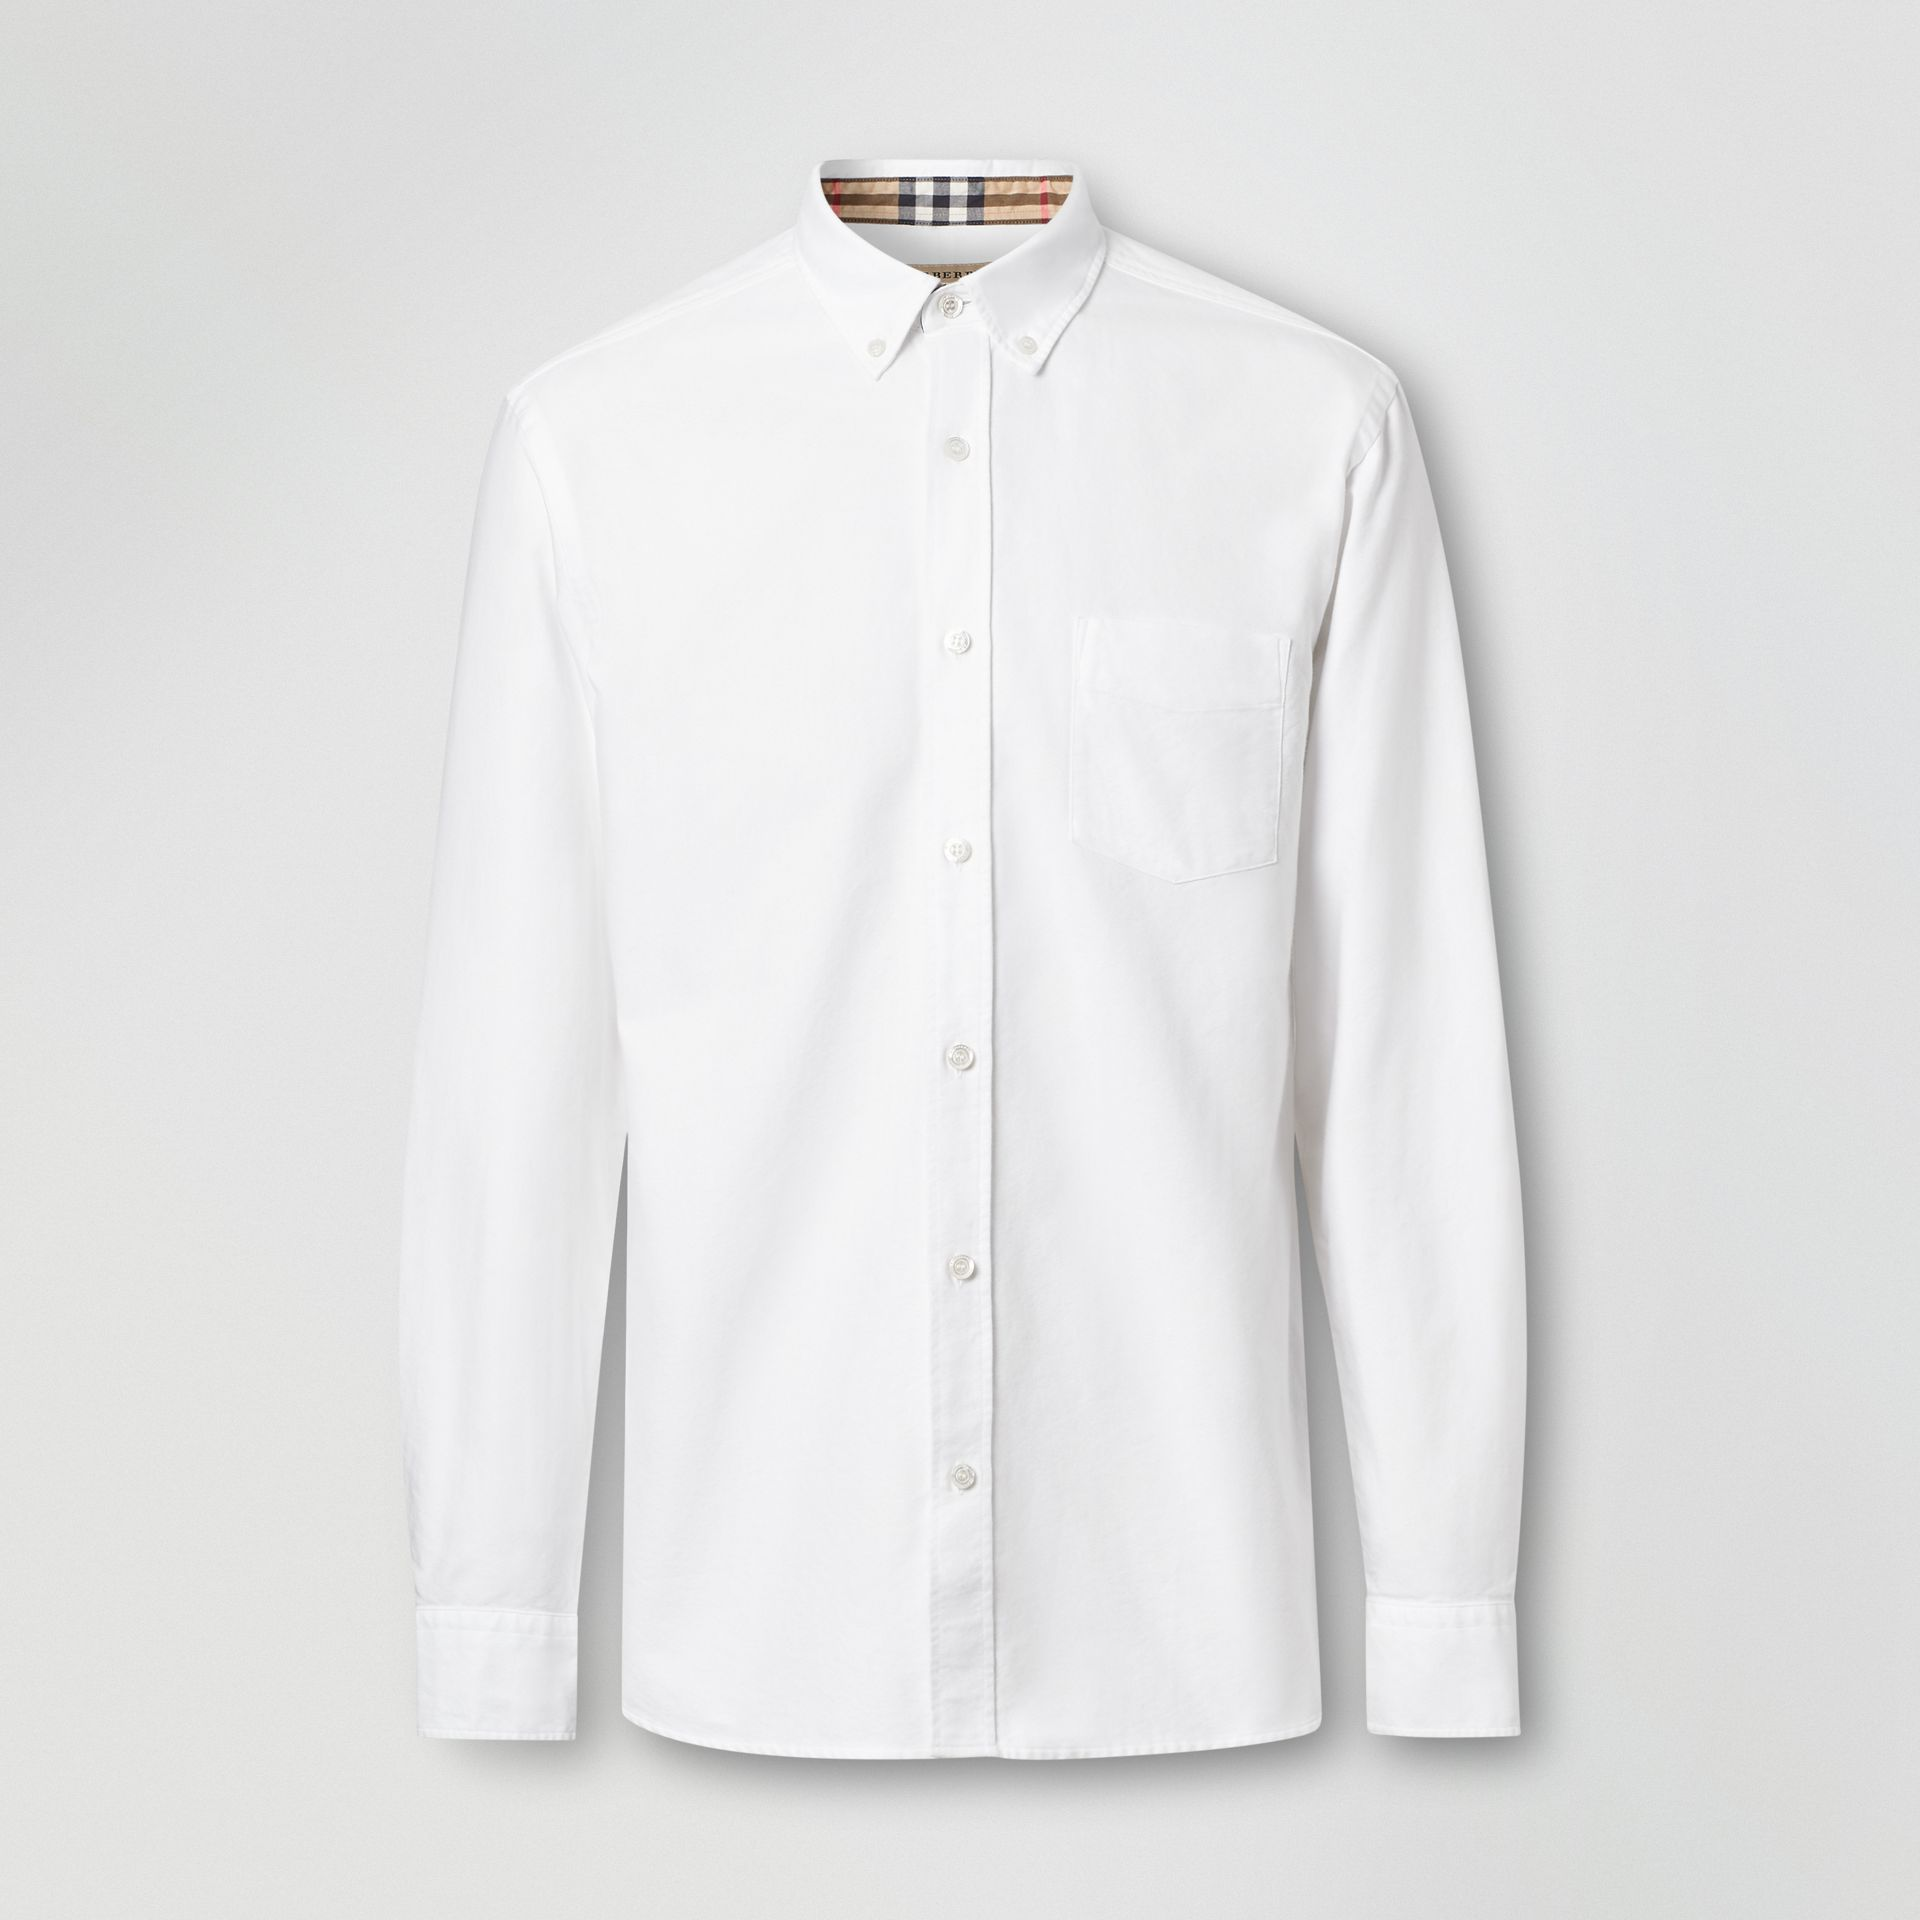 Button-down Collar Cotton Oxford Shirt in White - Men | Burberry Hong Kong - gallery image 3